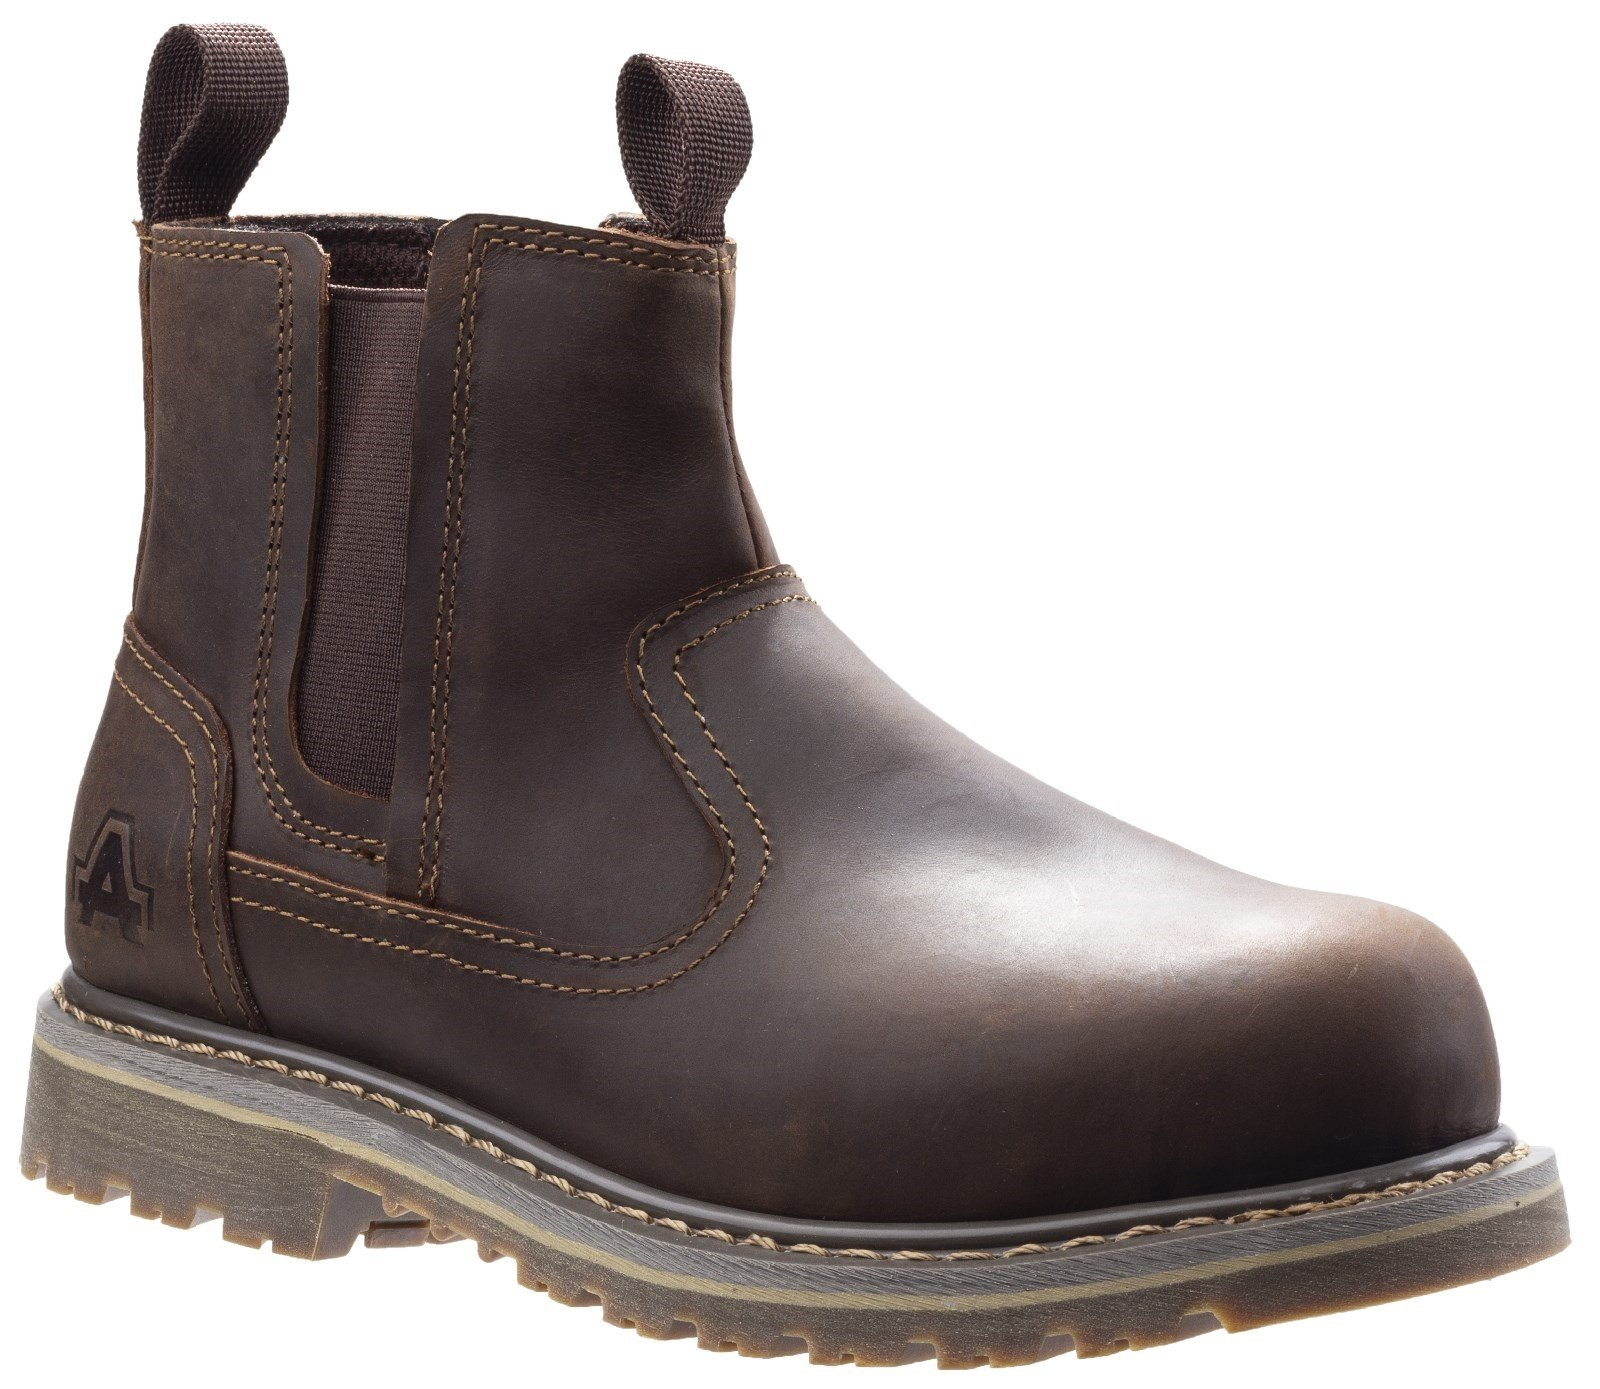 Amblers Women's Safety Alice Slip On Safety Boot Brown 29964 - Brown 3